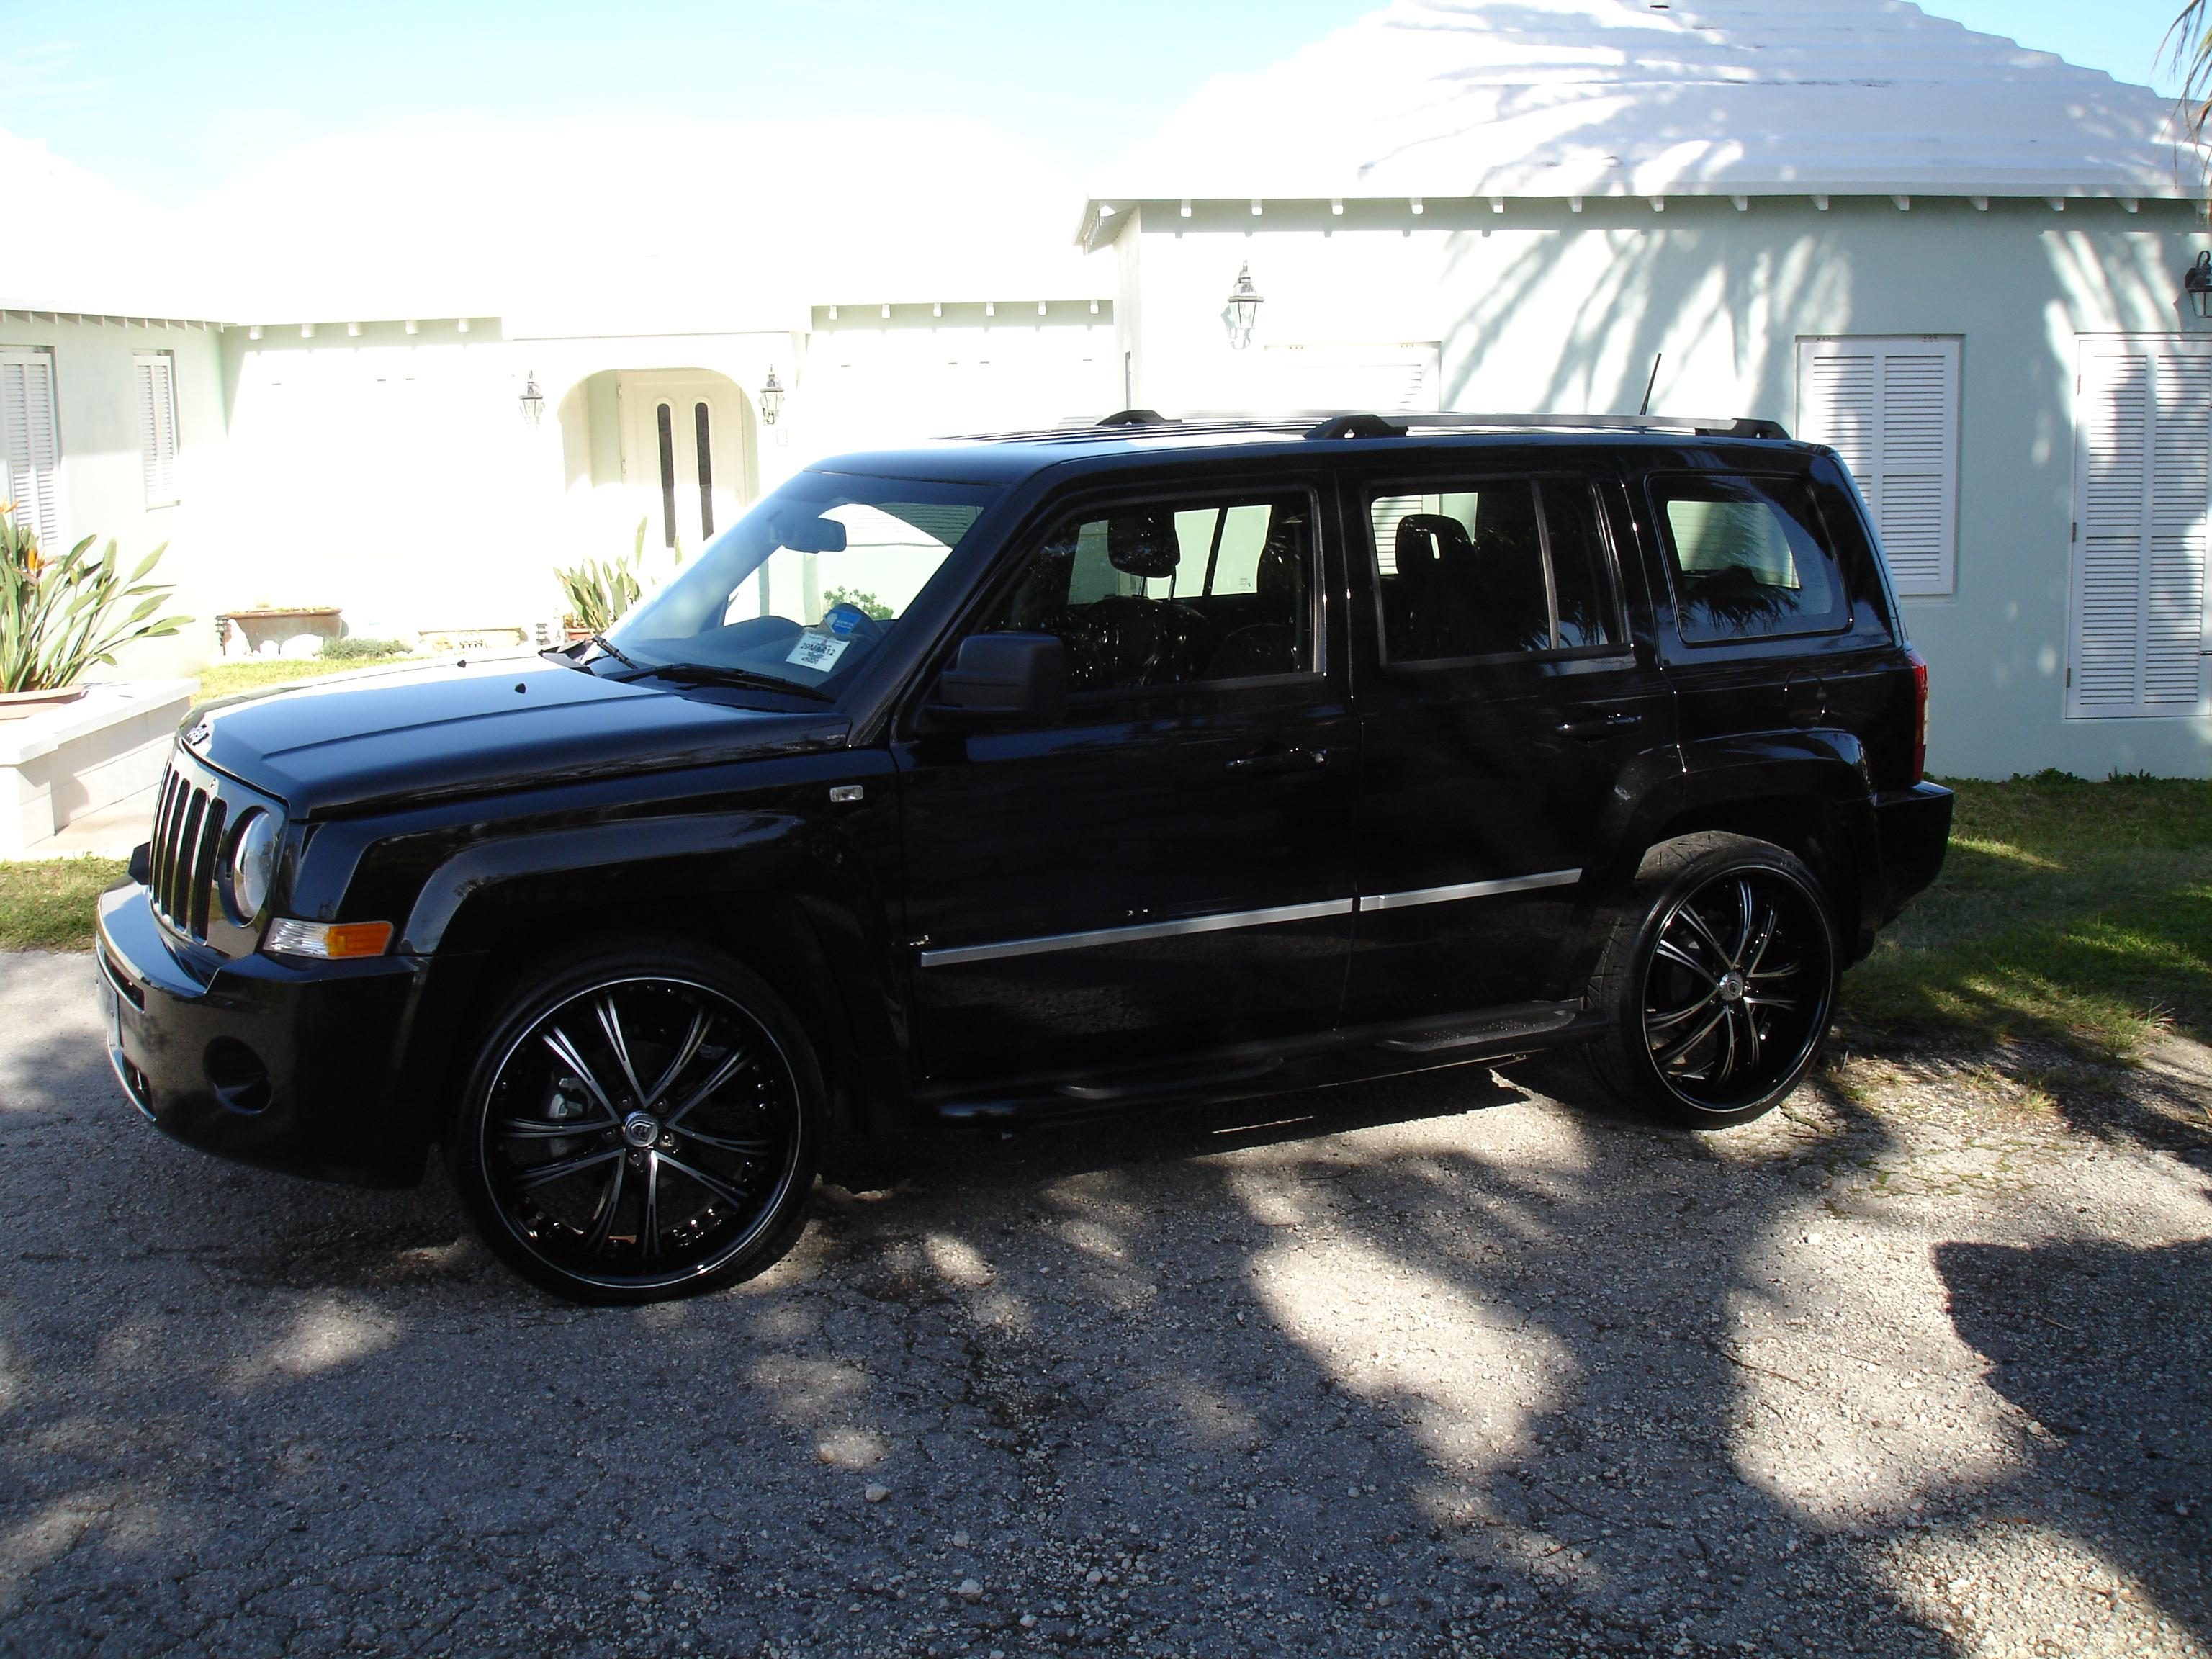 neverscared 2010 jeep patriotlimited specs, photos, modification